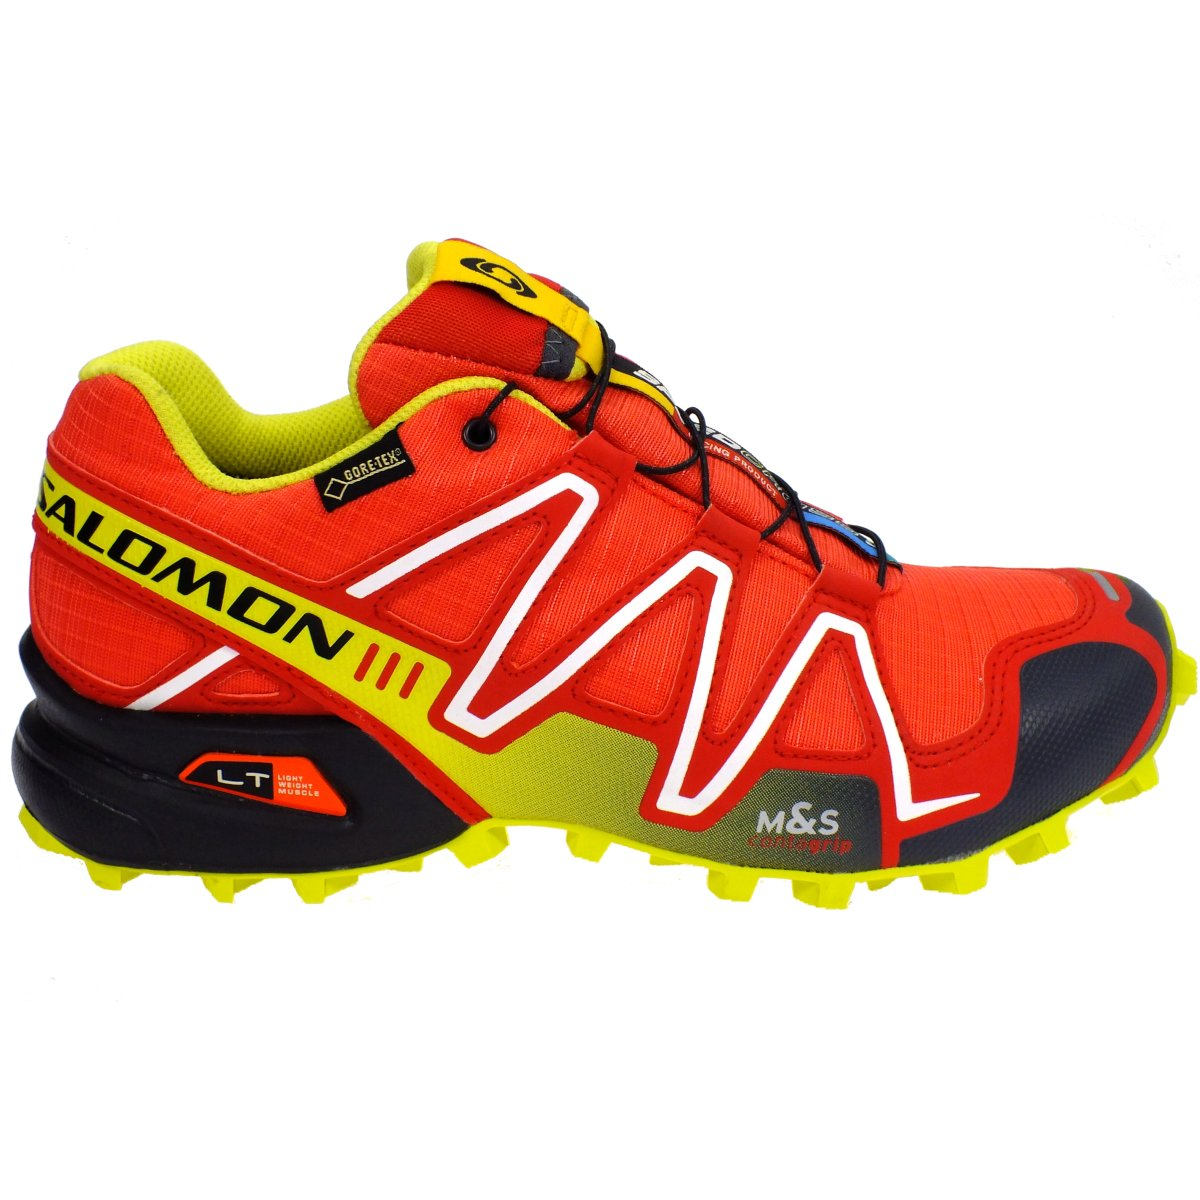 salomon speedcross 3 gtx schuhe laufschuhe trail running. Black Bedroom Furniture Sets. Home Design Ideas